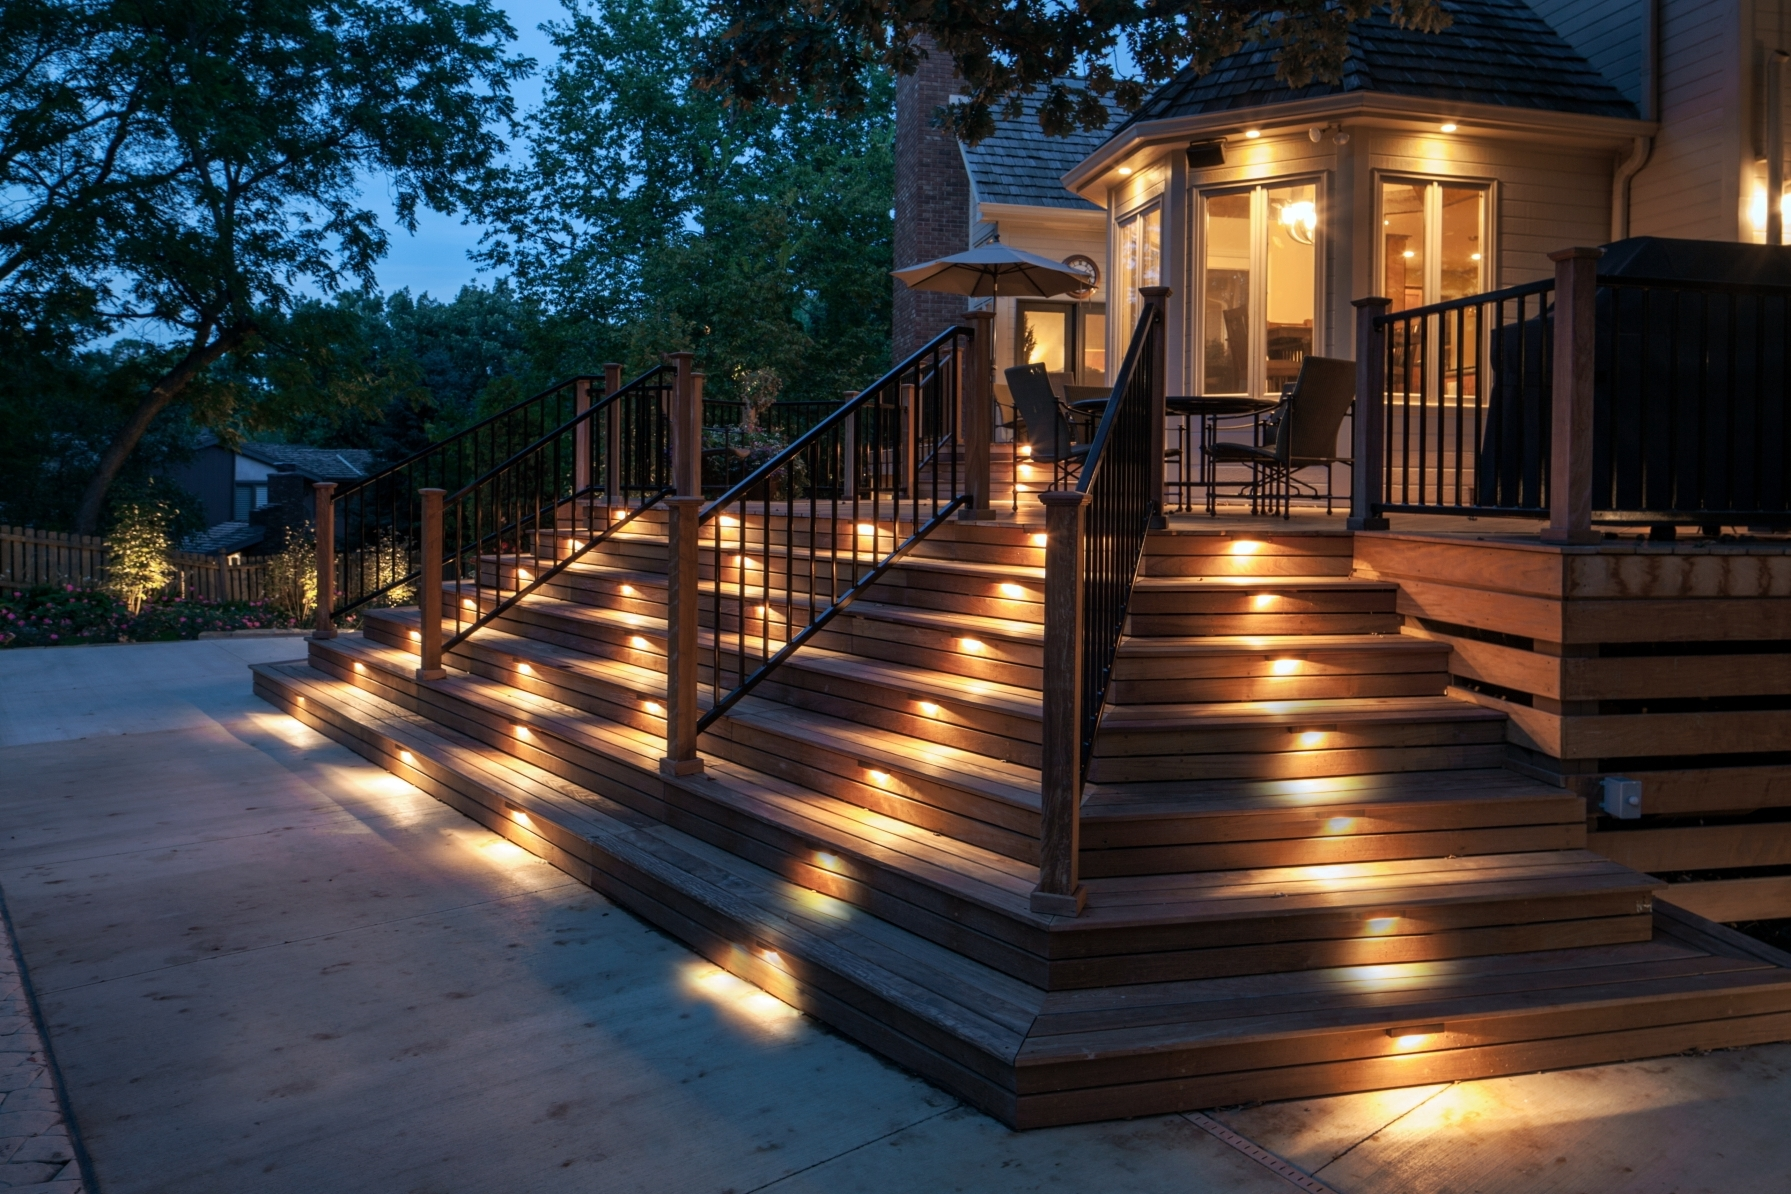 10 Great Outdoor Light Options For Your Home In Well Known Outdoor Driveway Lanterns (Gallery 11 of 20)